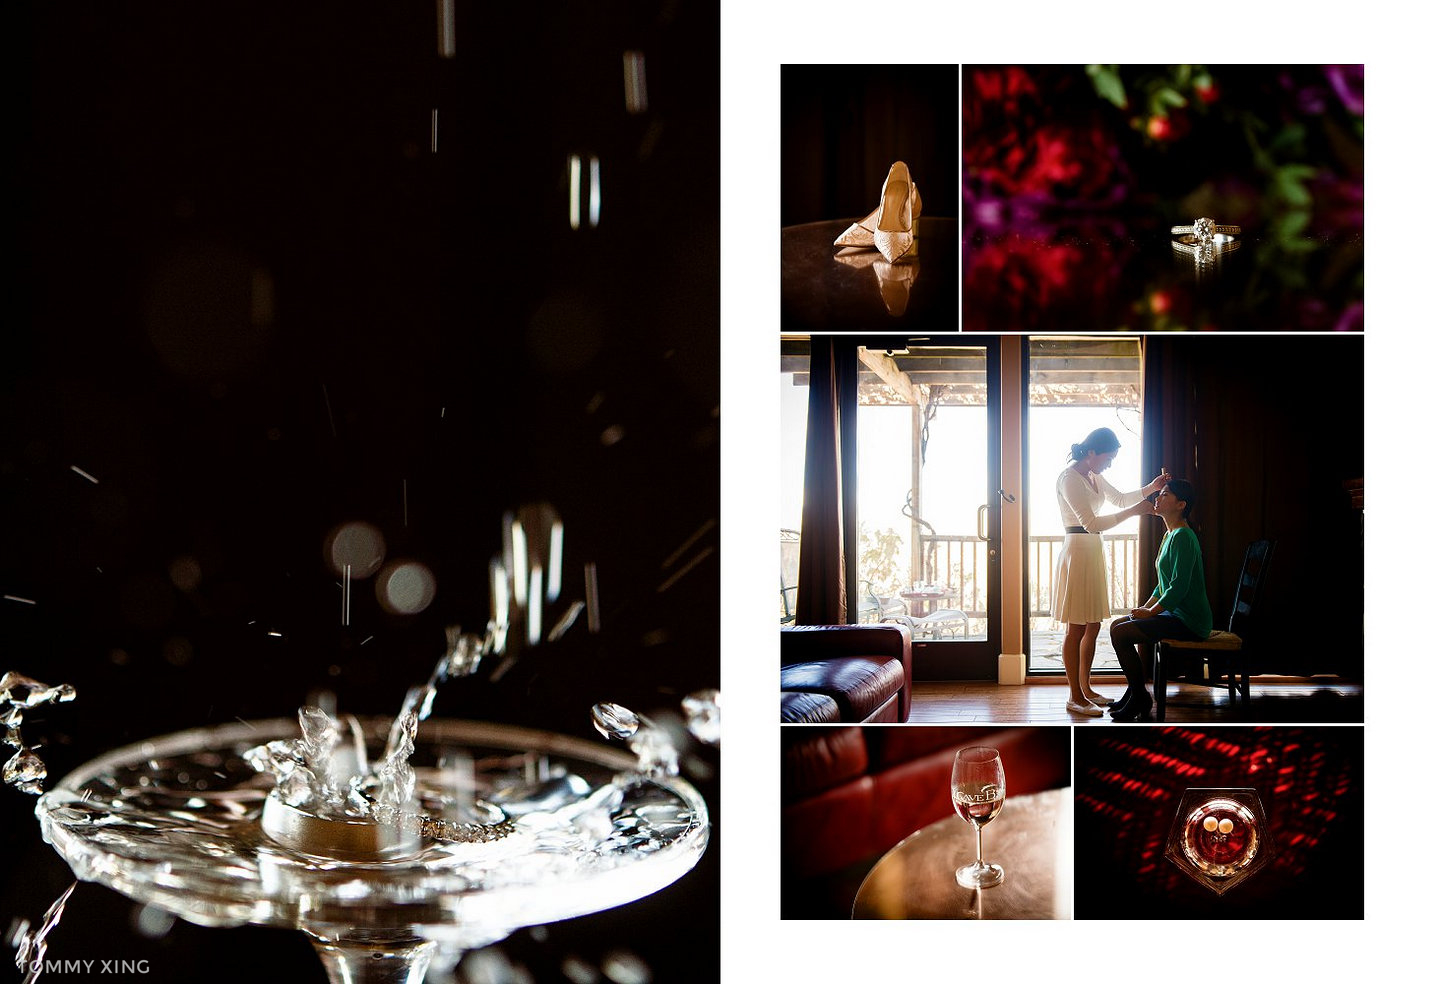 Tommy Xing Photography Seattle CAVE B ESTATE WINERY wedding 西雅图酒庄婚礼02.jpg